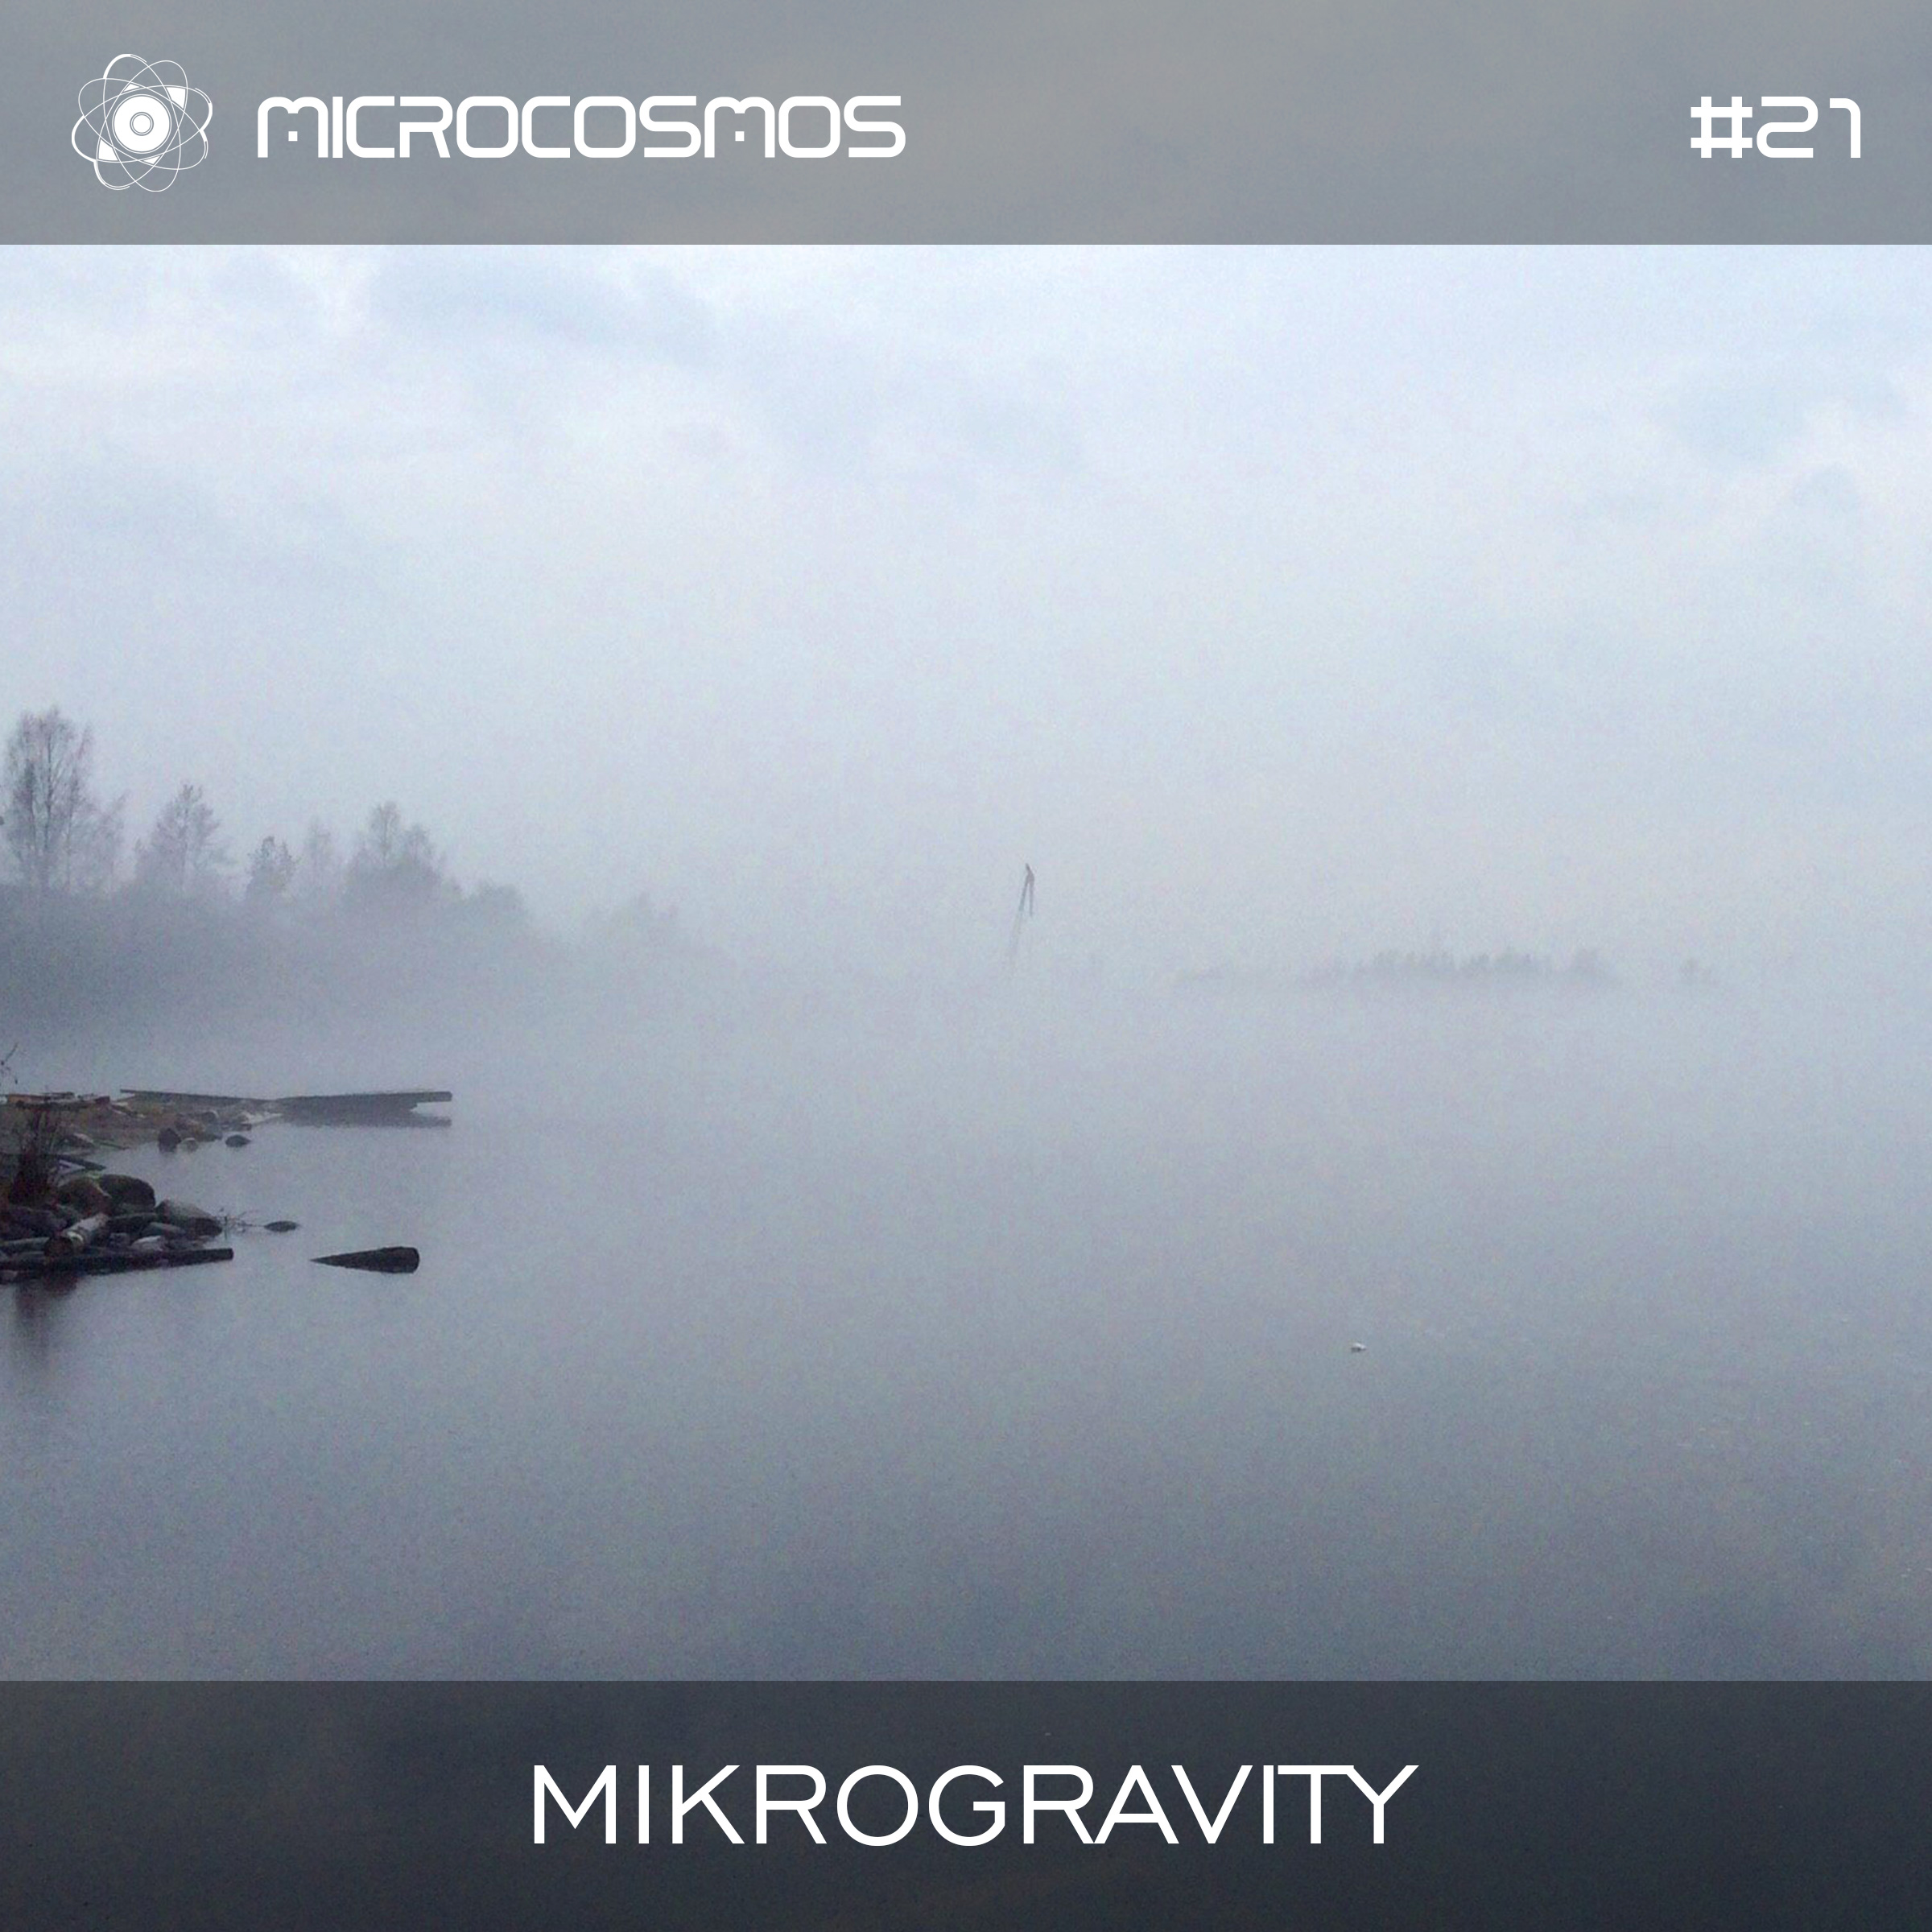 MIKROGRAVITY – Microcosmos Chillout & Ambient Podcast 021